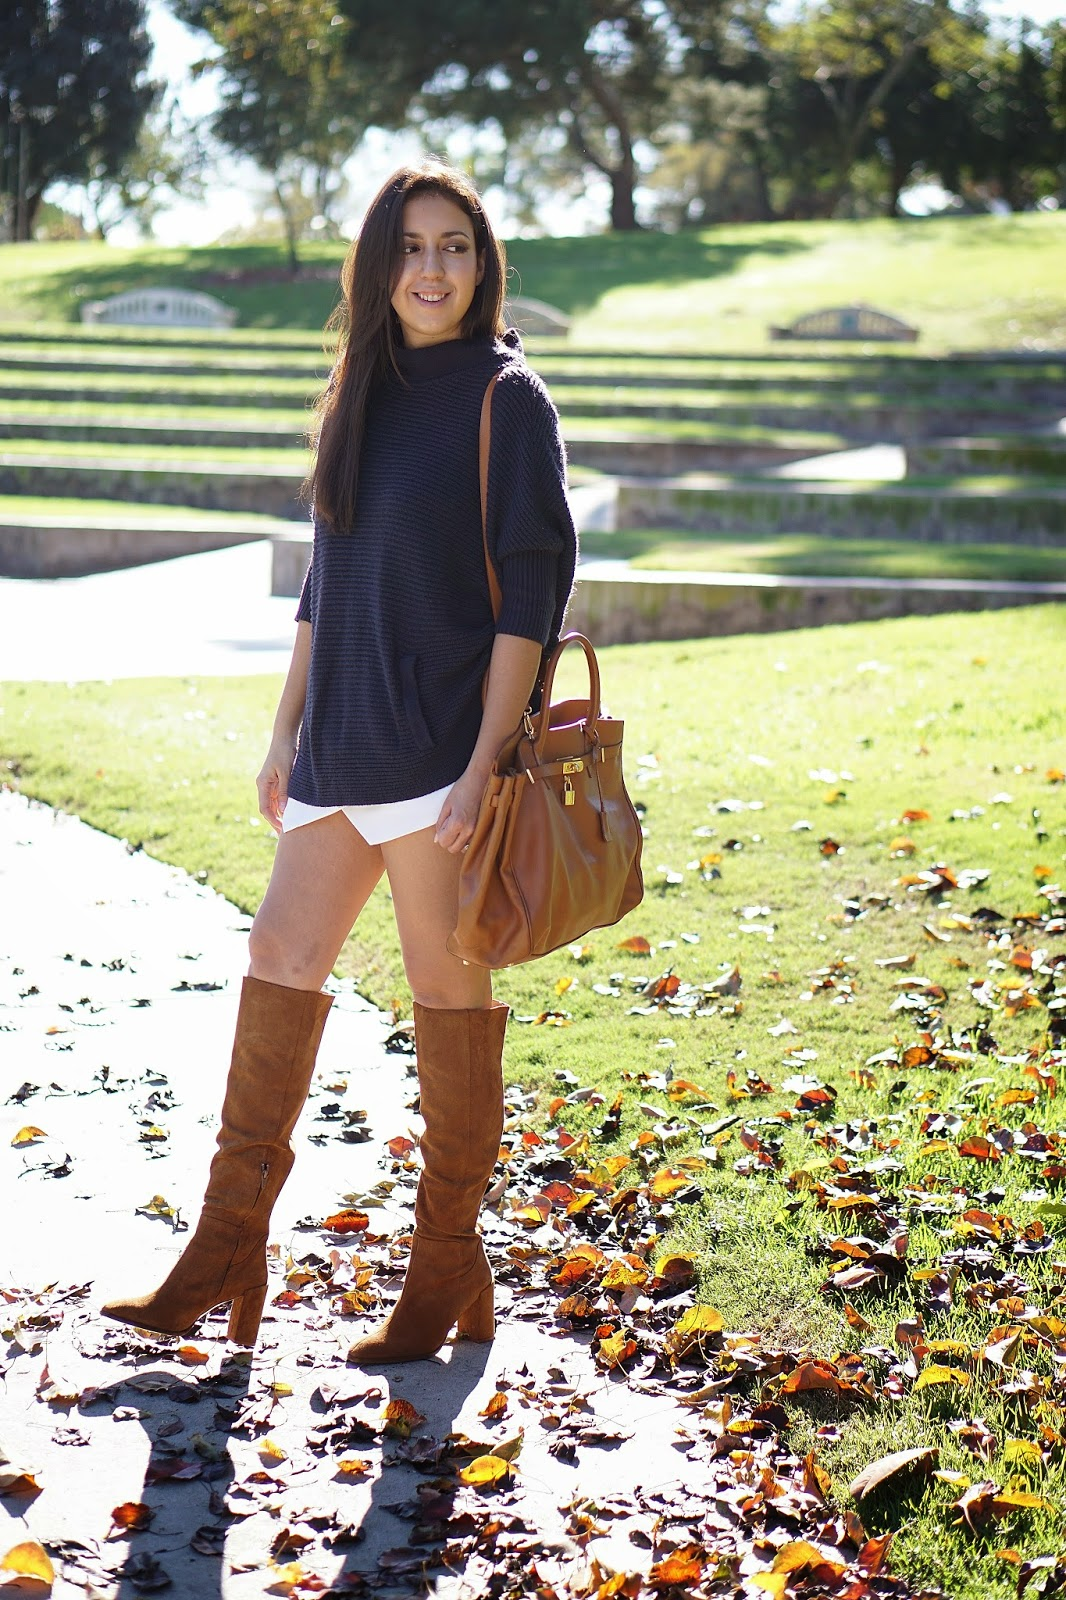 Zara High Heeled Leather Boot, Zara Camel Colored Knee High Boot, Light Brown Boots, Forever 21 White Skort, White Skort, Hermes Inspired Bag, Oversized Navy Sweater, H&M Navy Sweater, How To Wear Knee High Boots With A Skirt